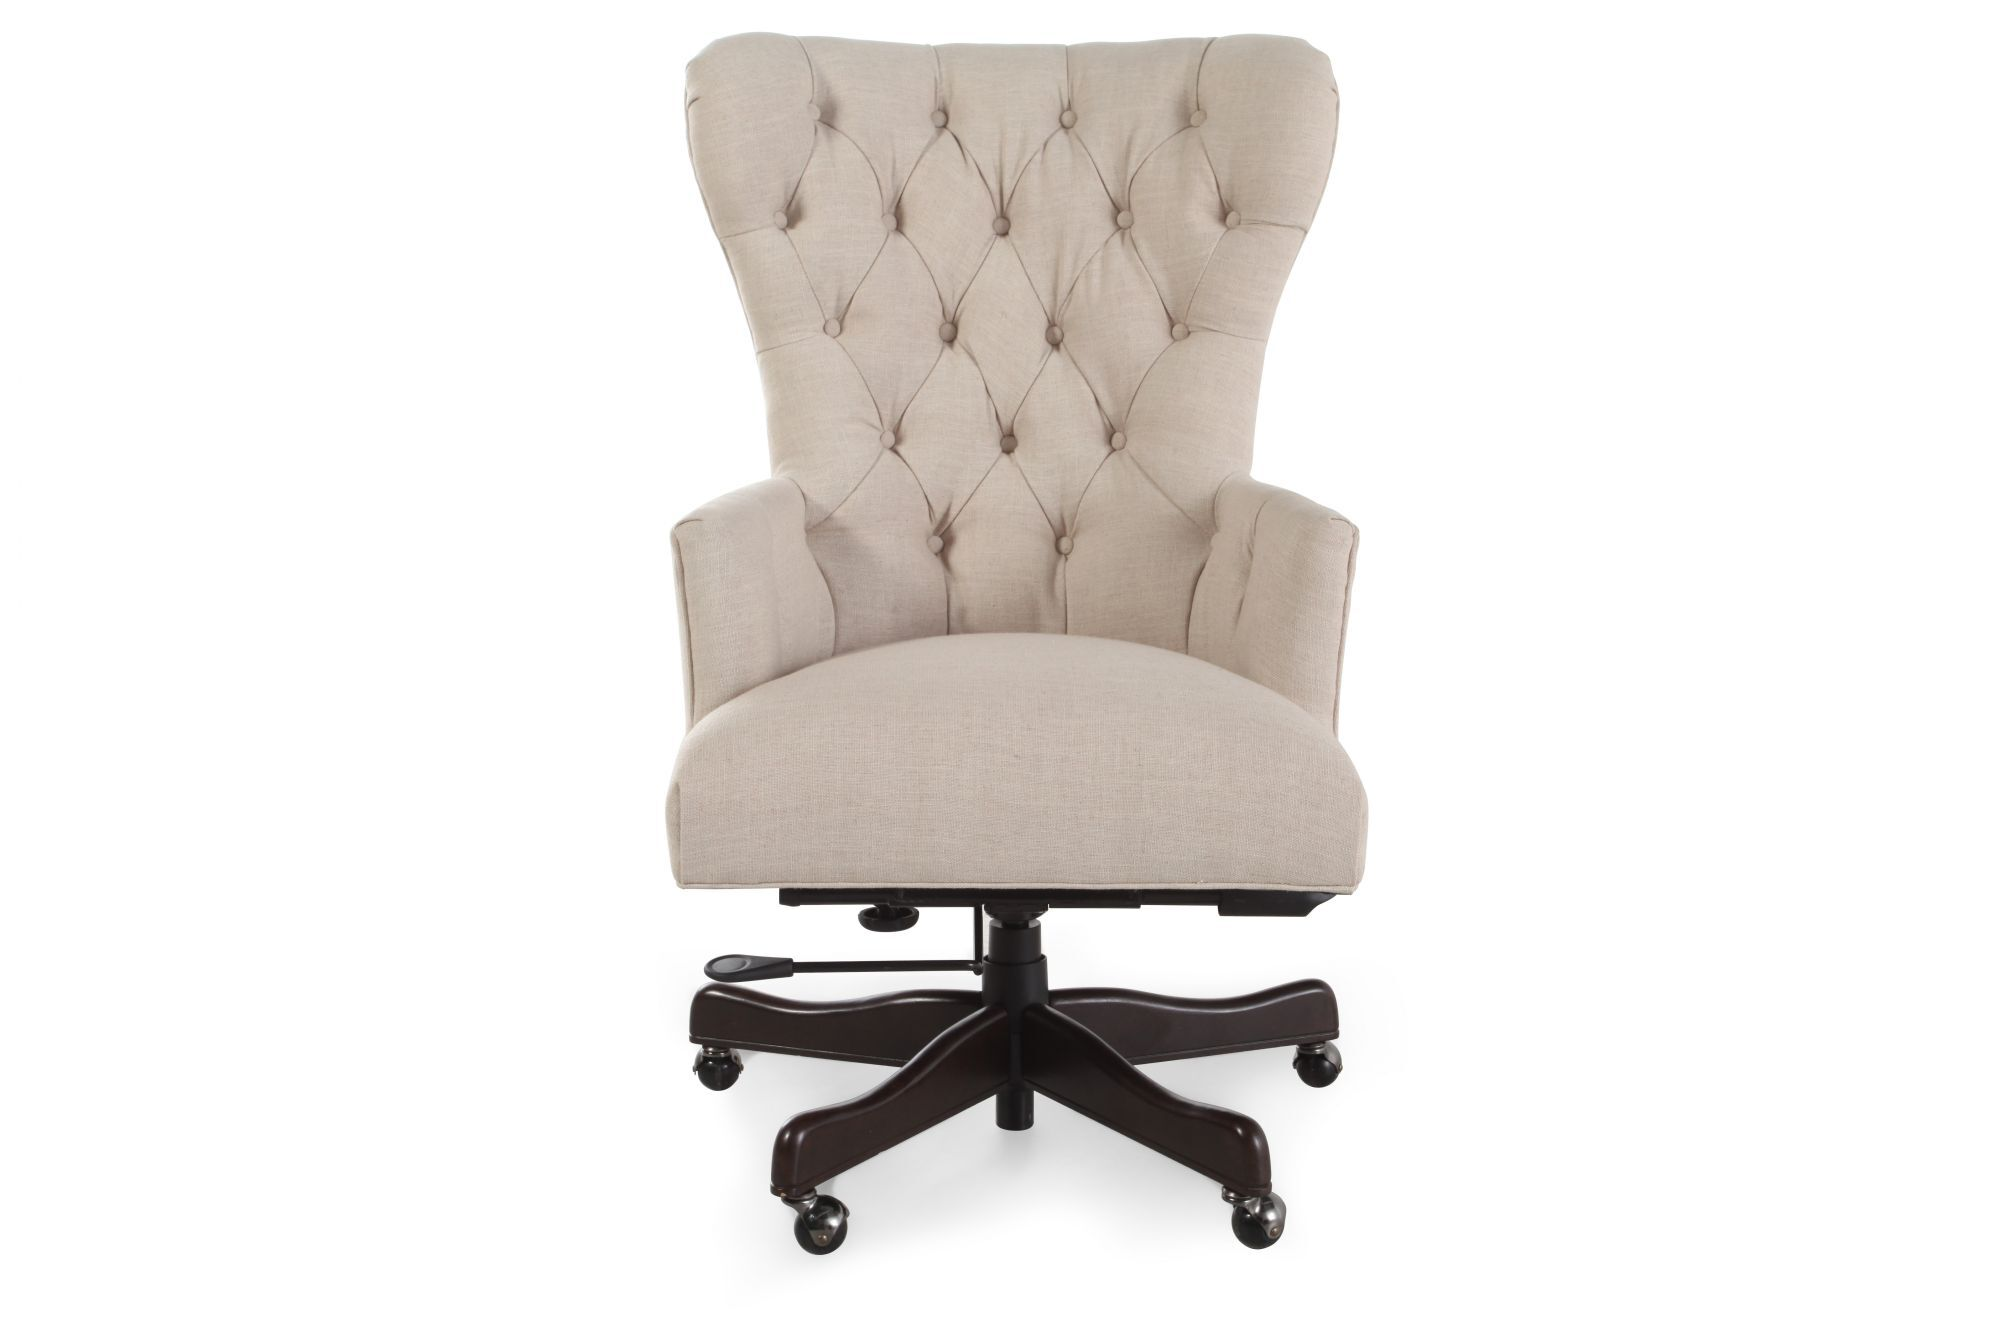 medium resolution of button tufted swivel desk chair in natchez brown mathis brothers furniture